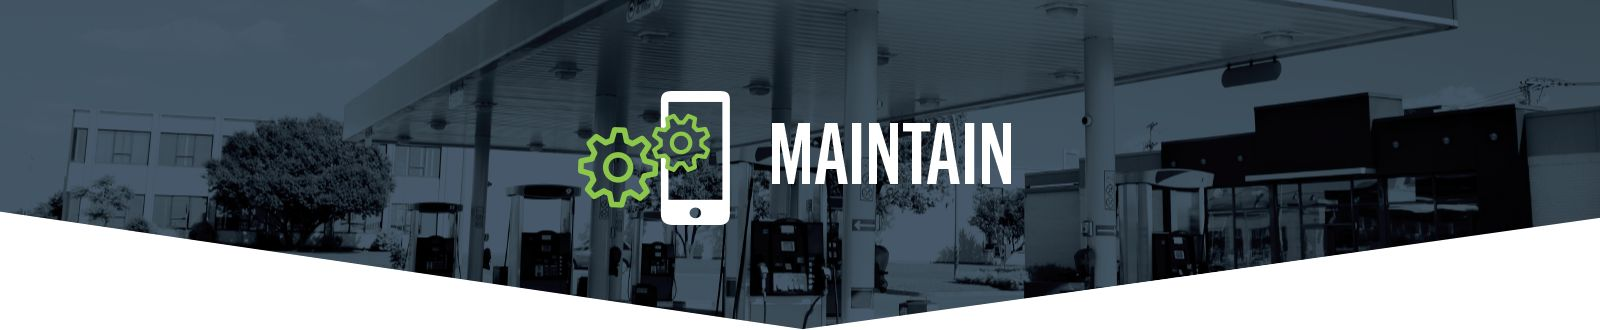 FFS-Maintain-Page-Duo-Banner.psd